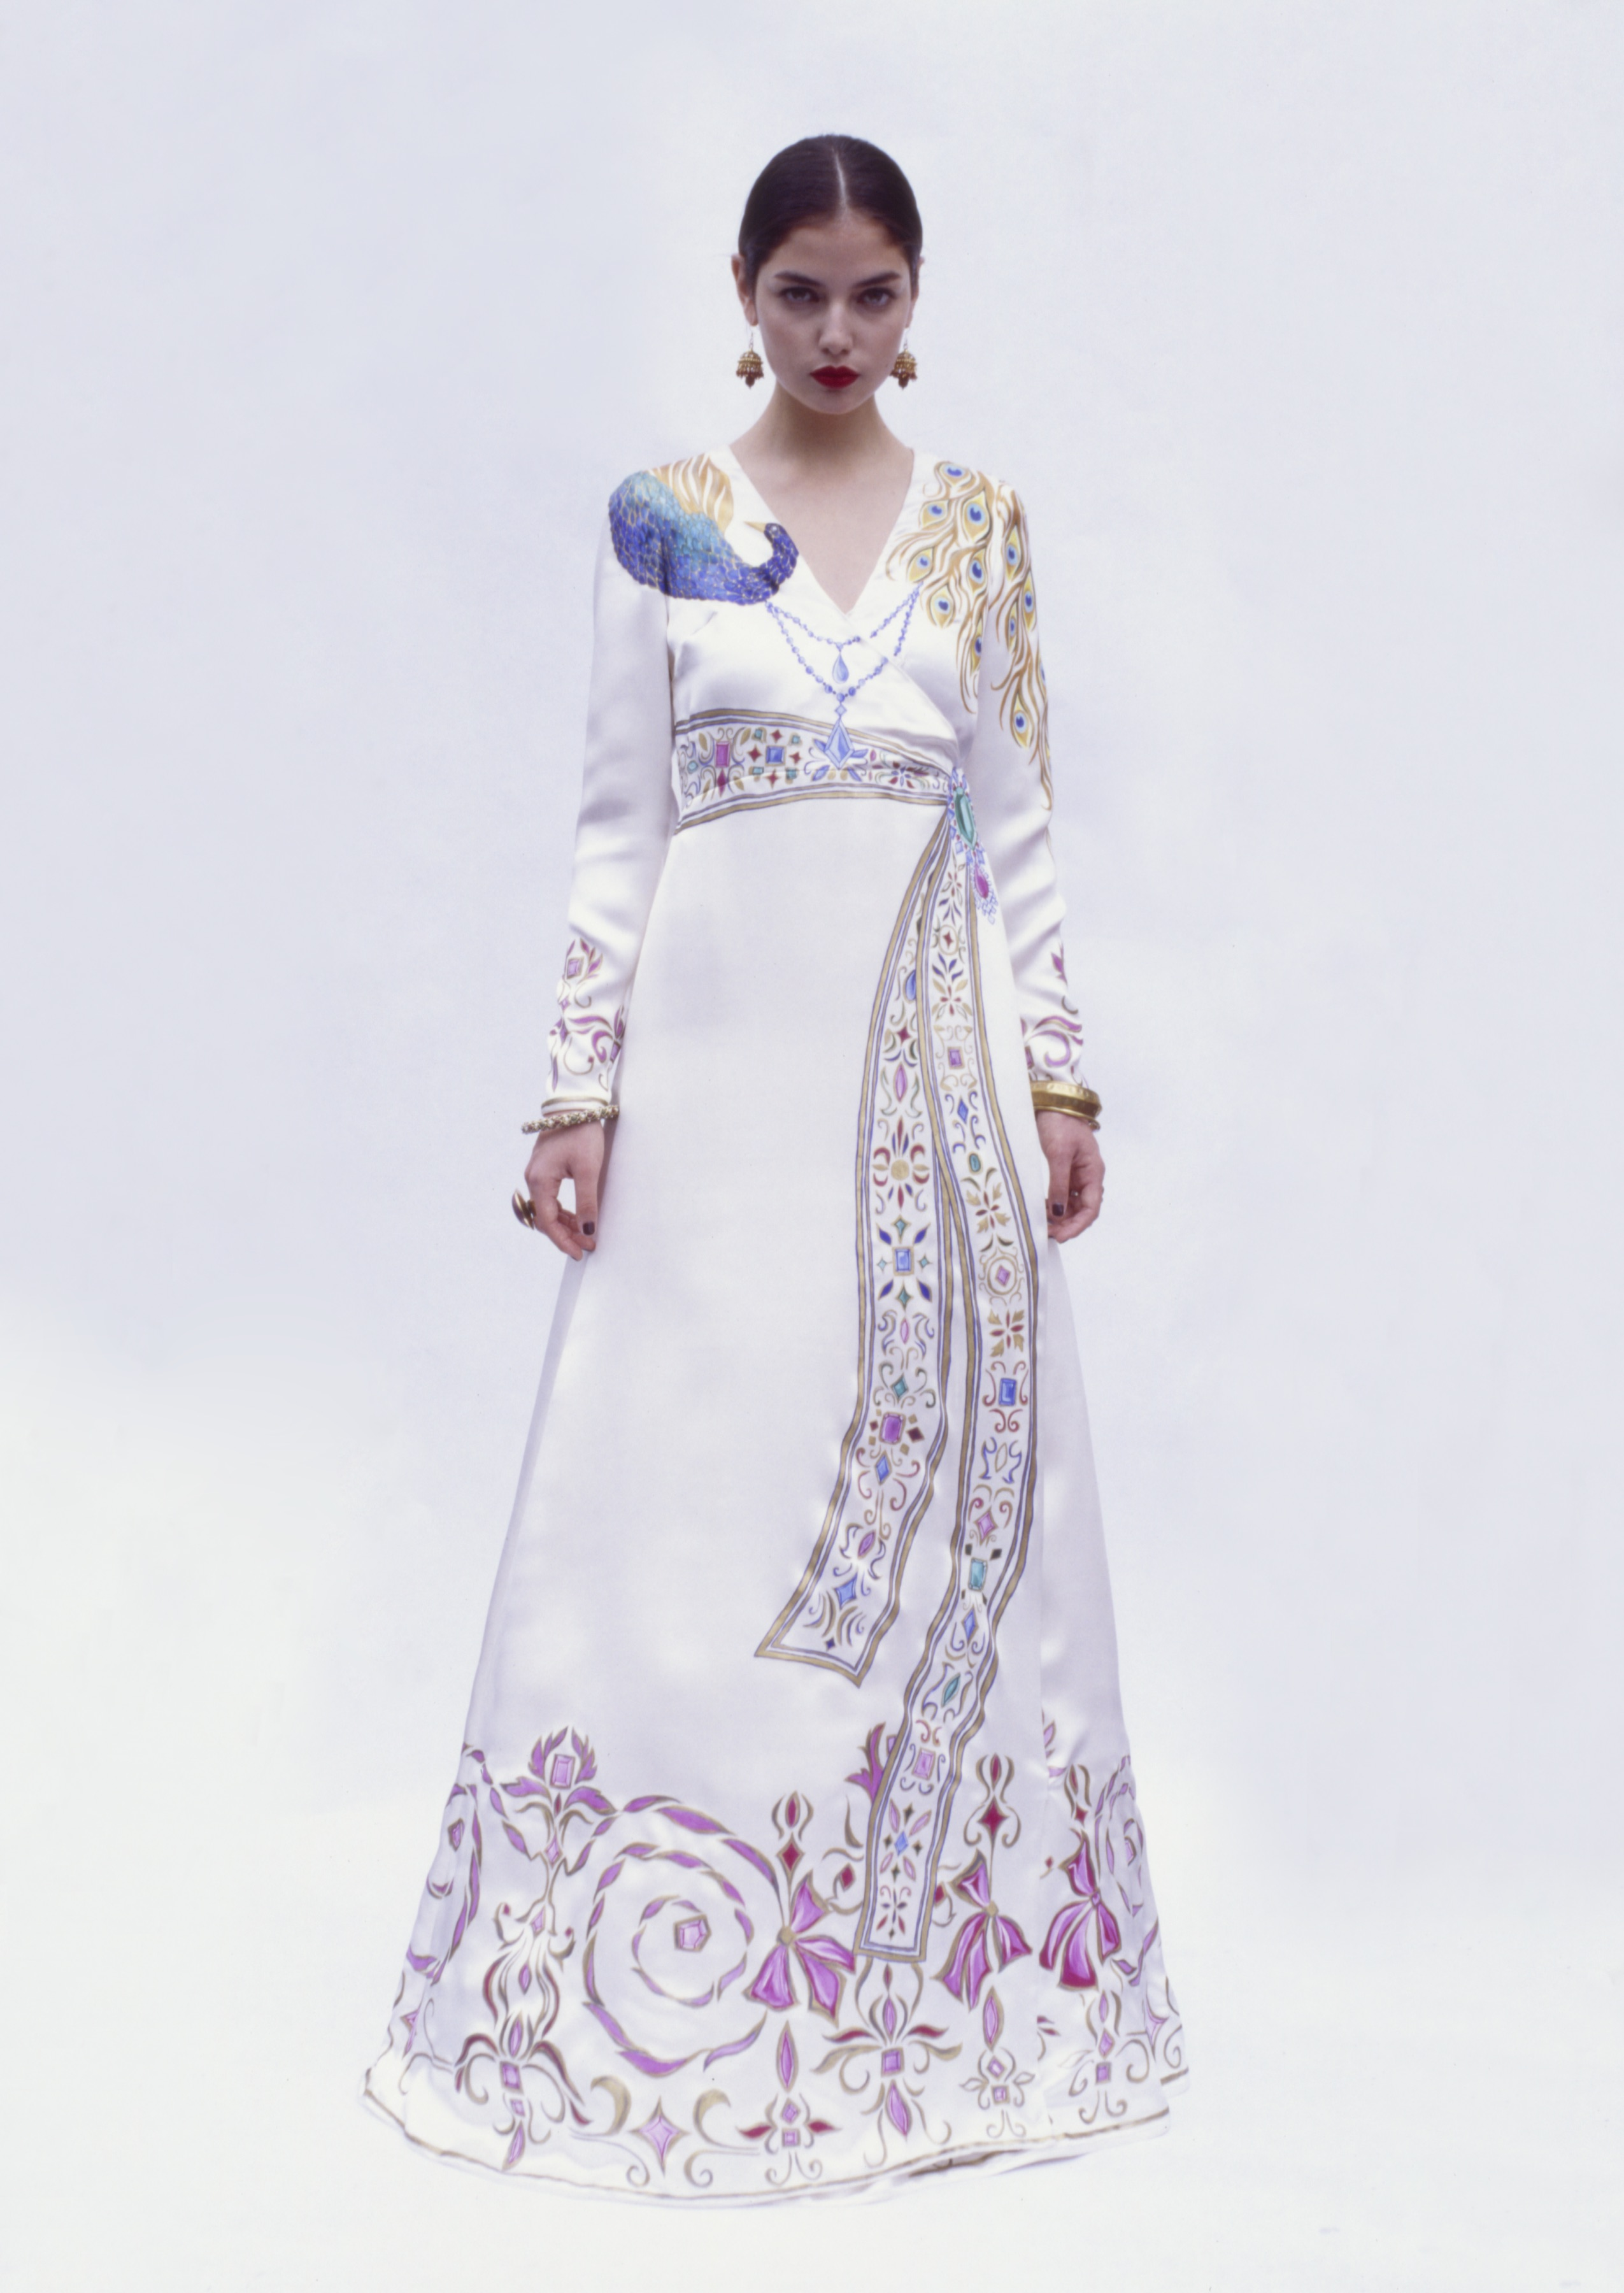 A hand-painted peacock gown